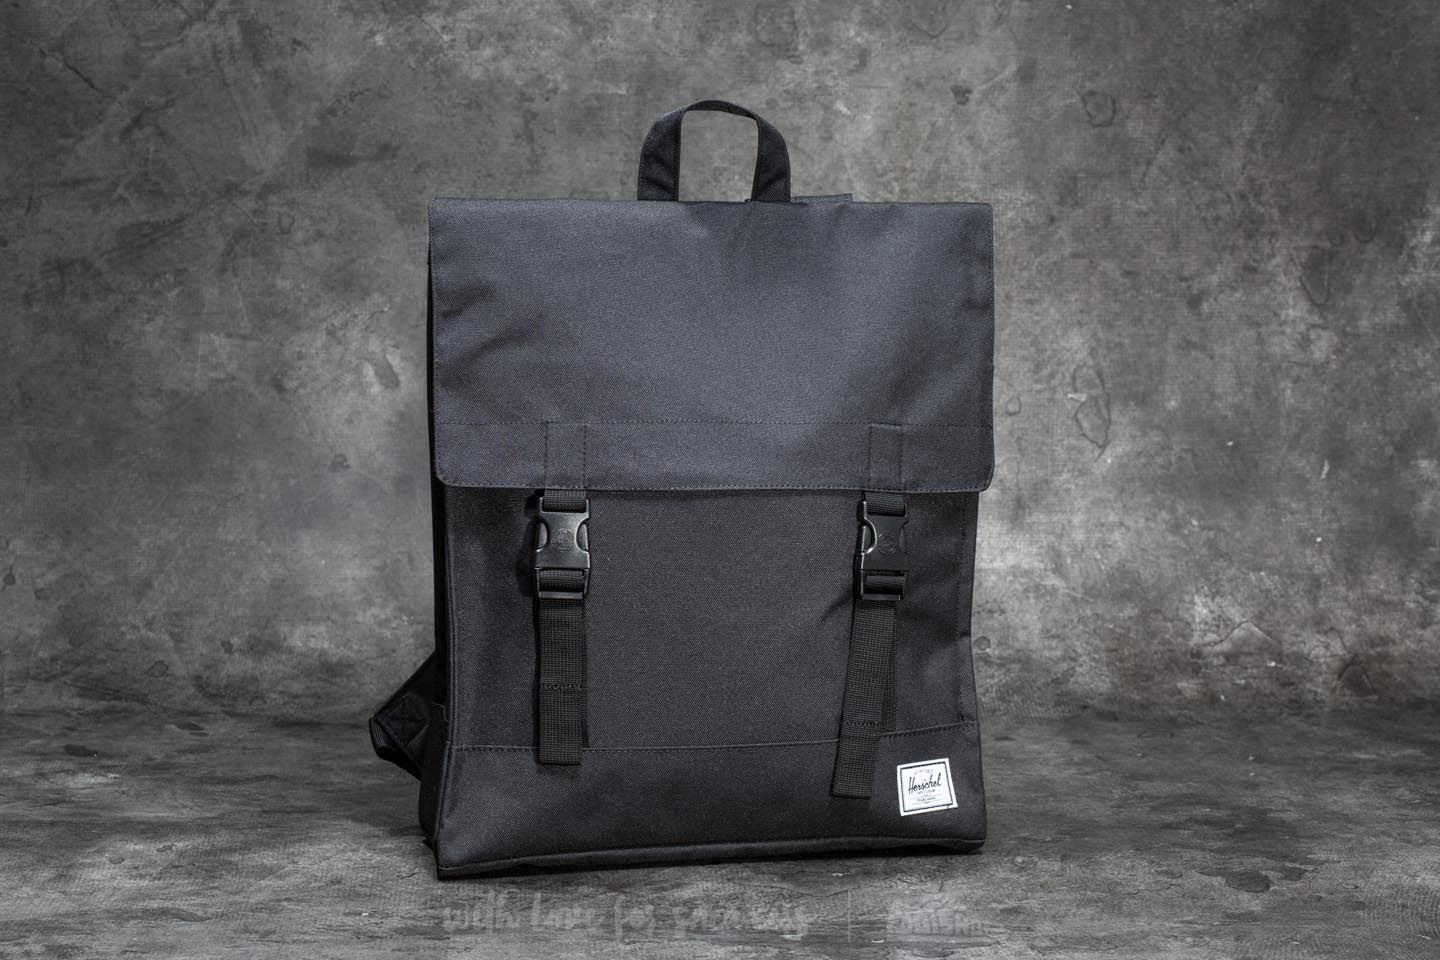 Herschel Supply Co. Survey Backpack Black - 19206